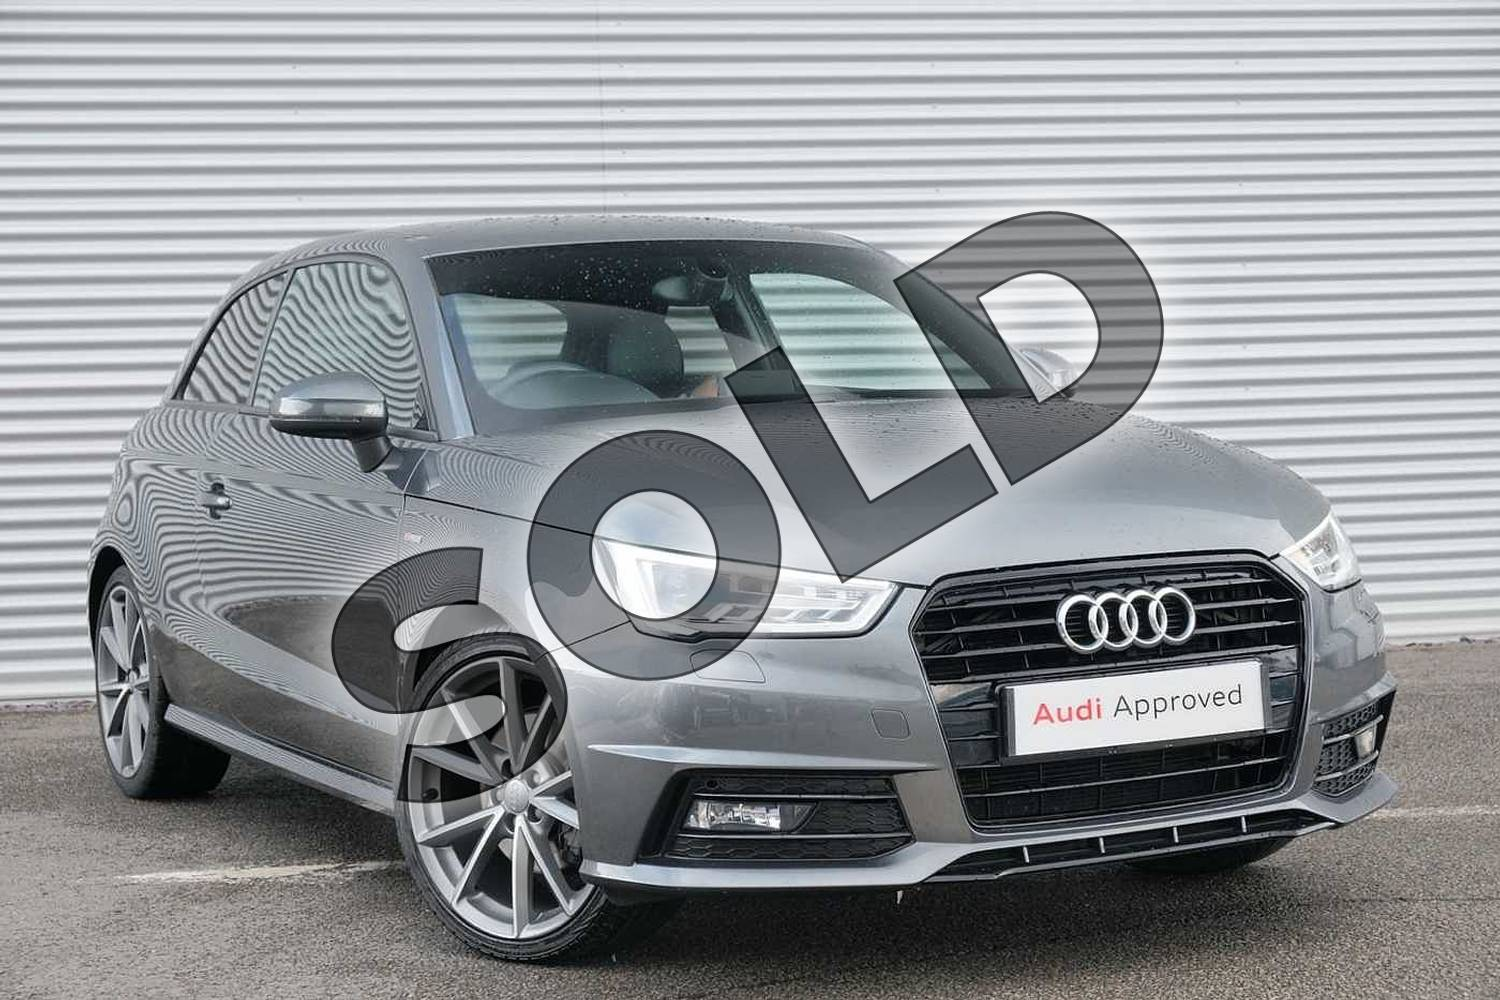 2017 Audi A1 Hatchback Special Editions 1.6 TDI Black Edition 3dr in Daytona Grey Pearlescent at Coventry Audi